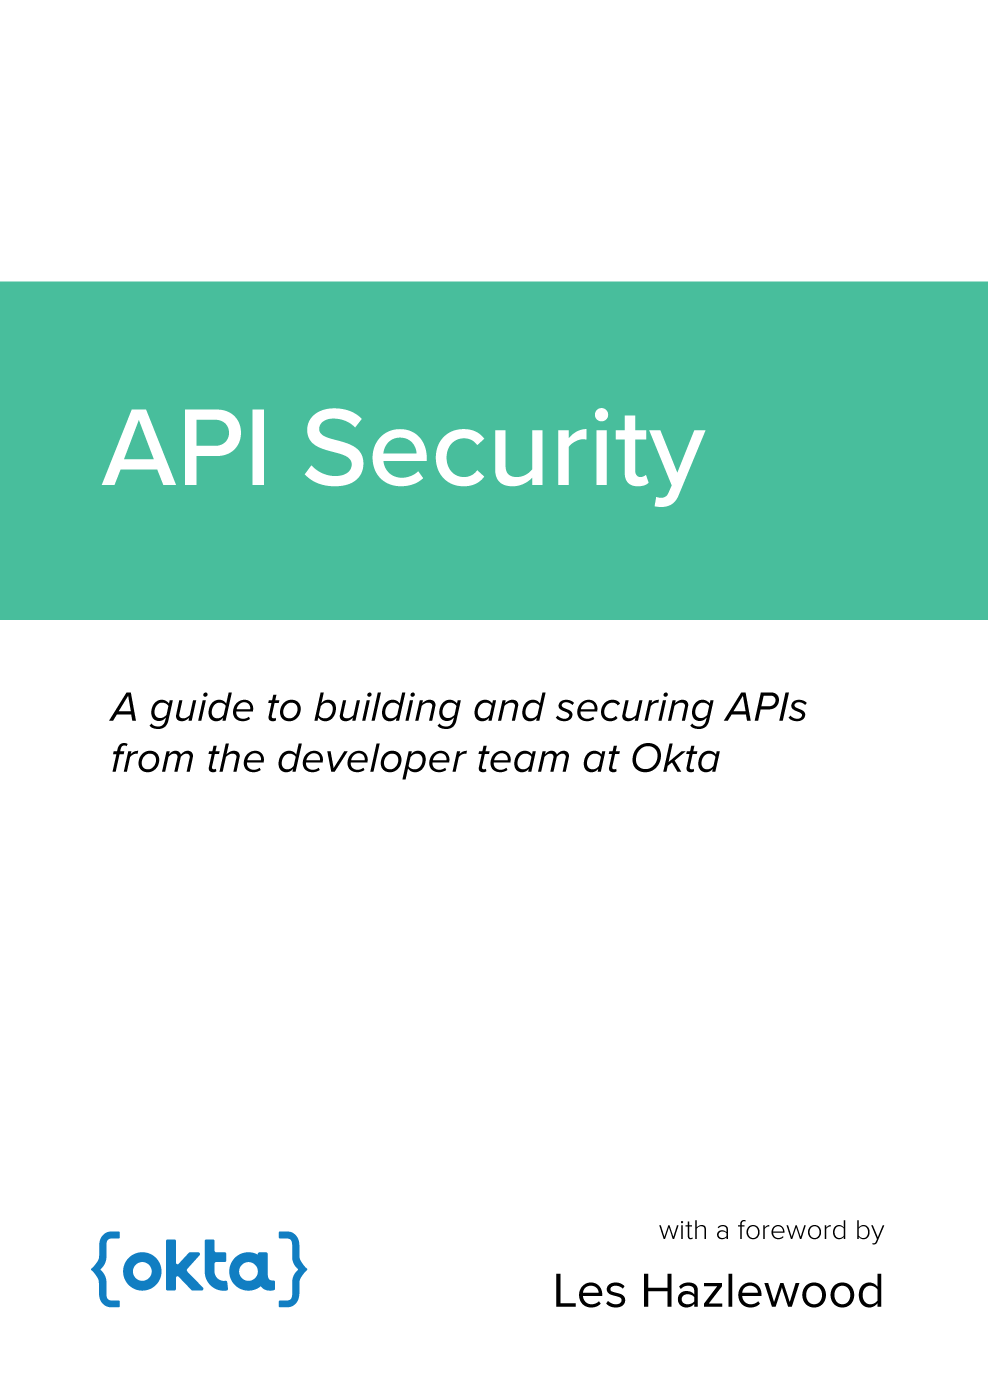 API Security Book